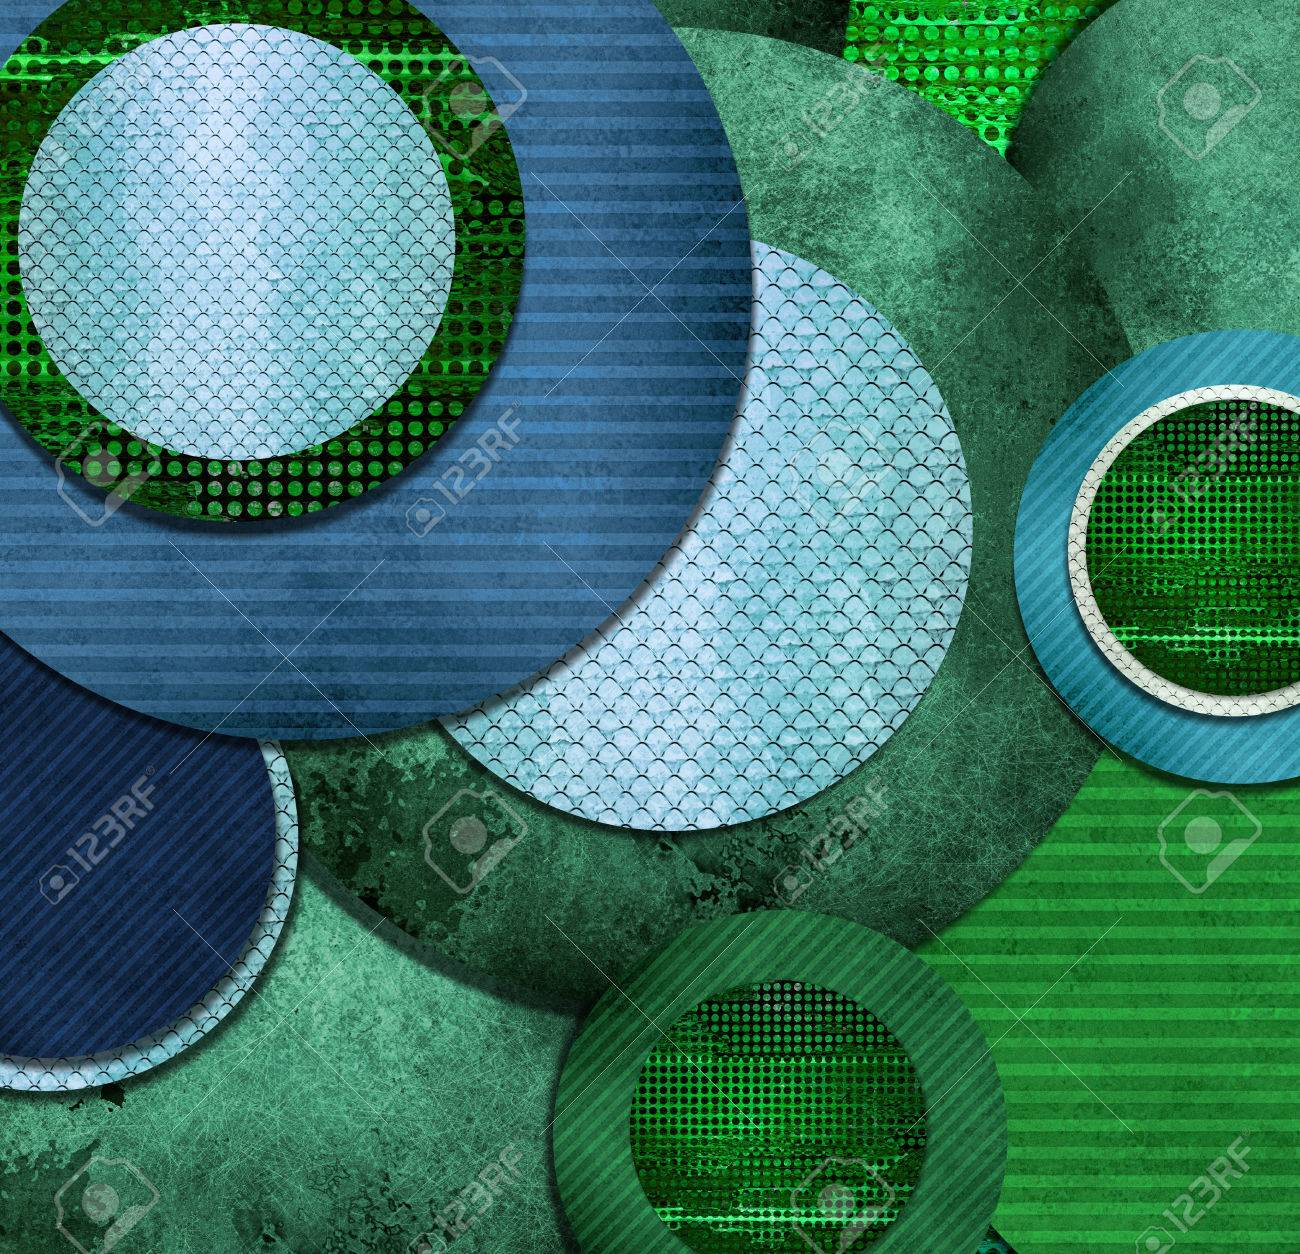 fun abstract circle designs in green and blue layers cool texture and artsy composition stock